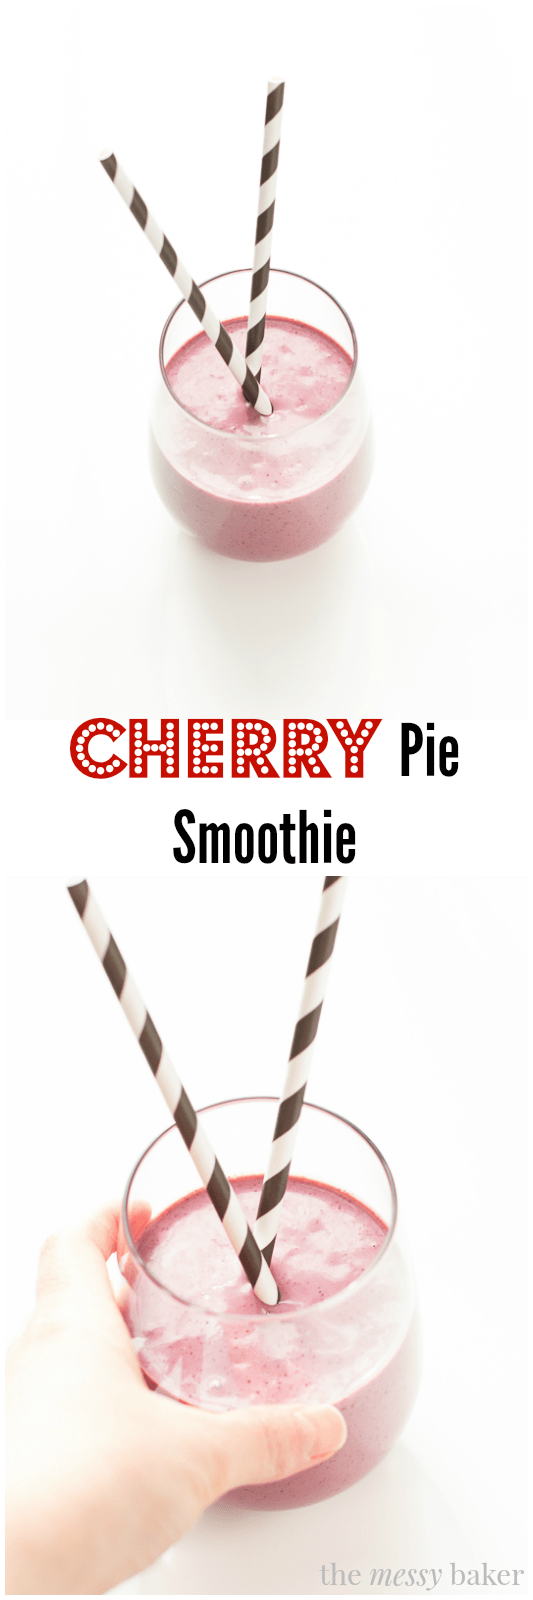 Cherry Pie Smoothie - One Sweet Mess